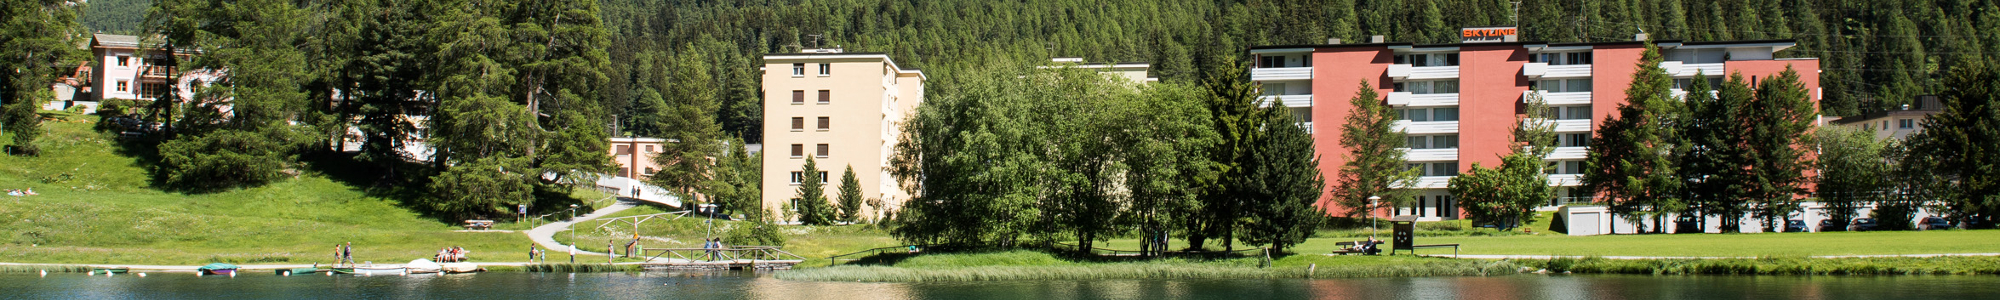 St. Moritz Resort Apartments, Engadin